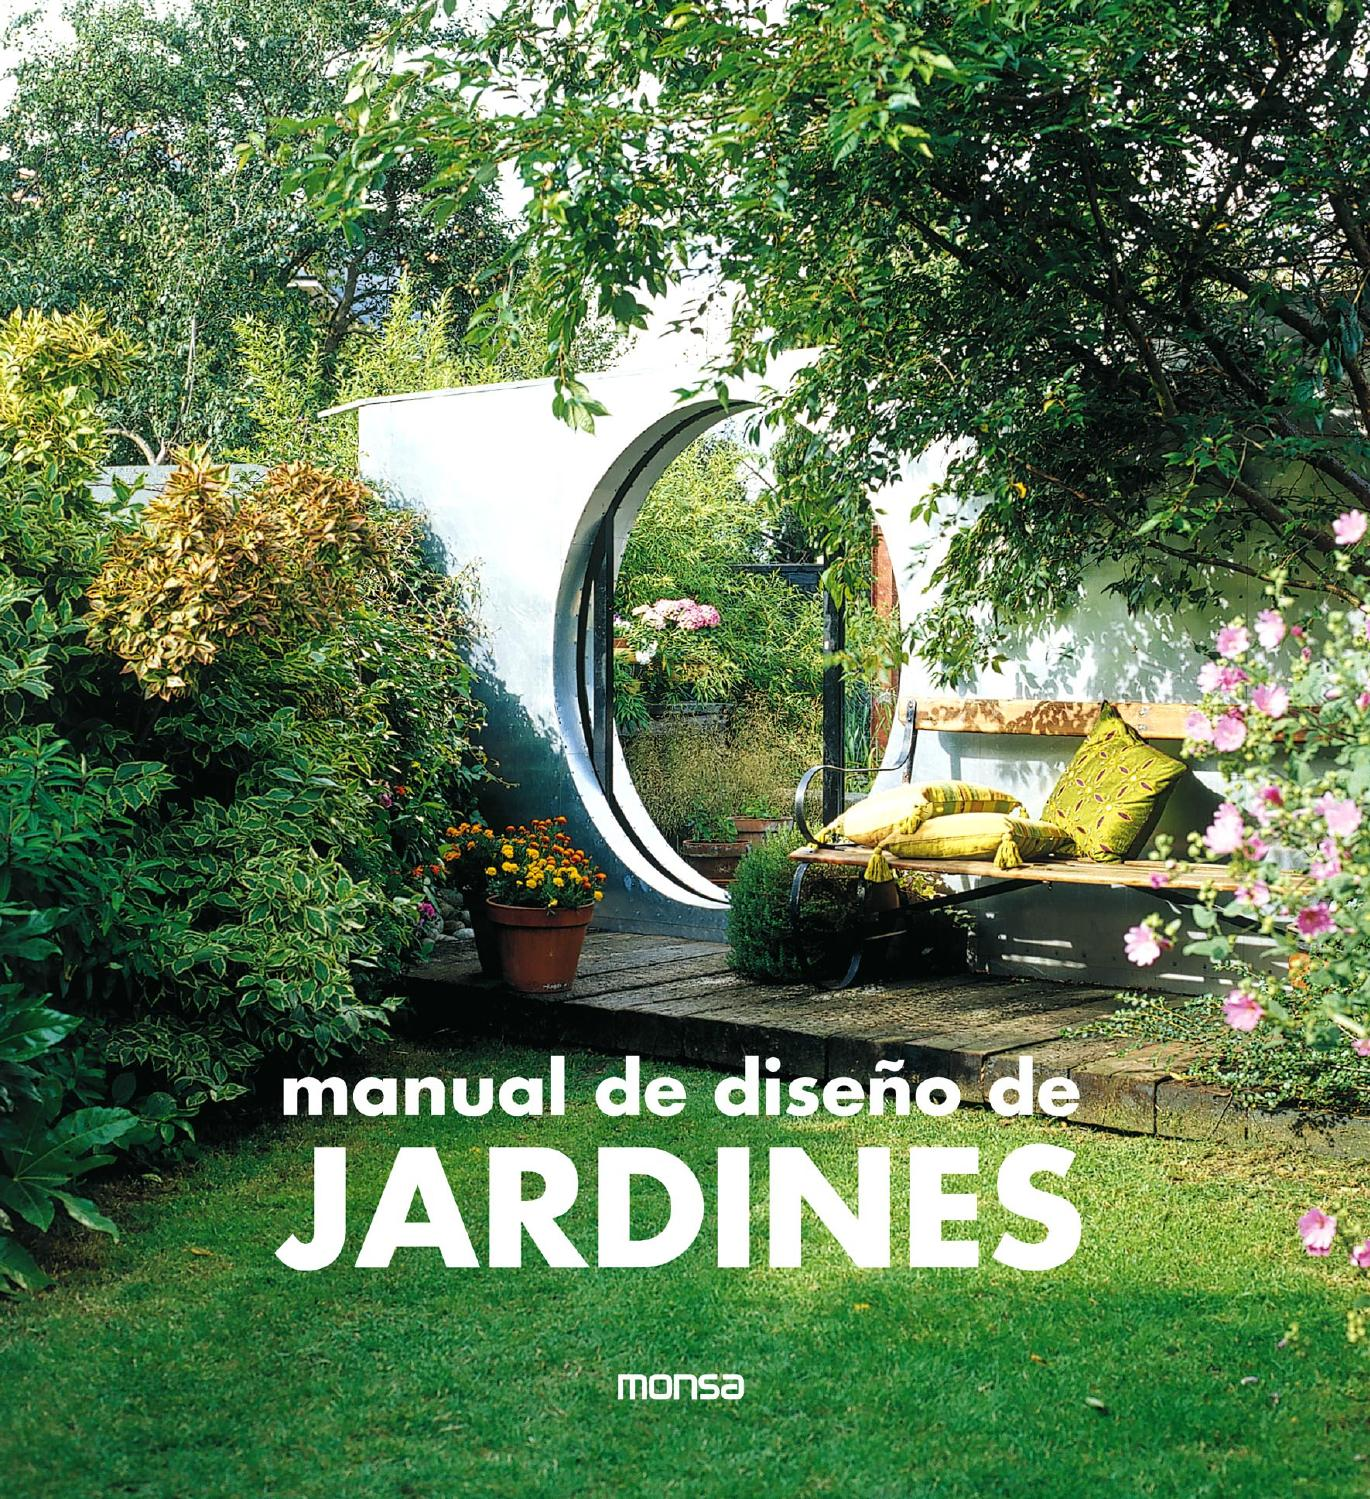 Manual de dise o de jardines by monsa publications issuu for Diseno jardines